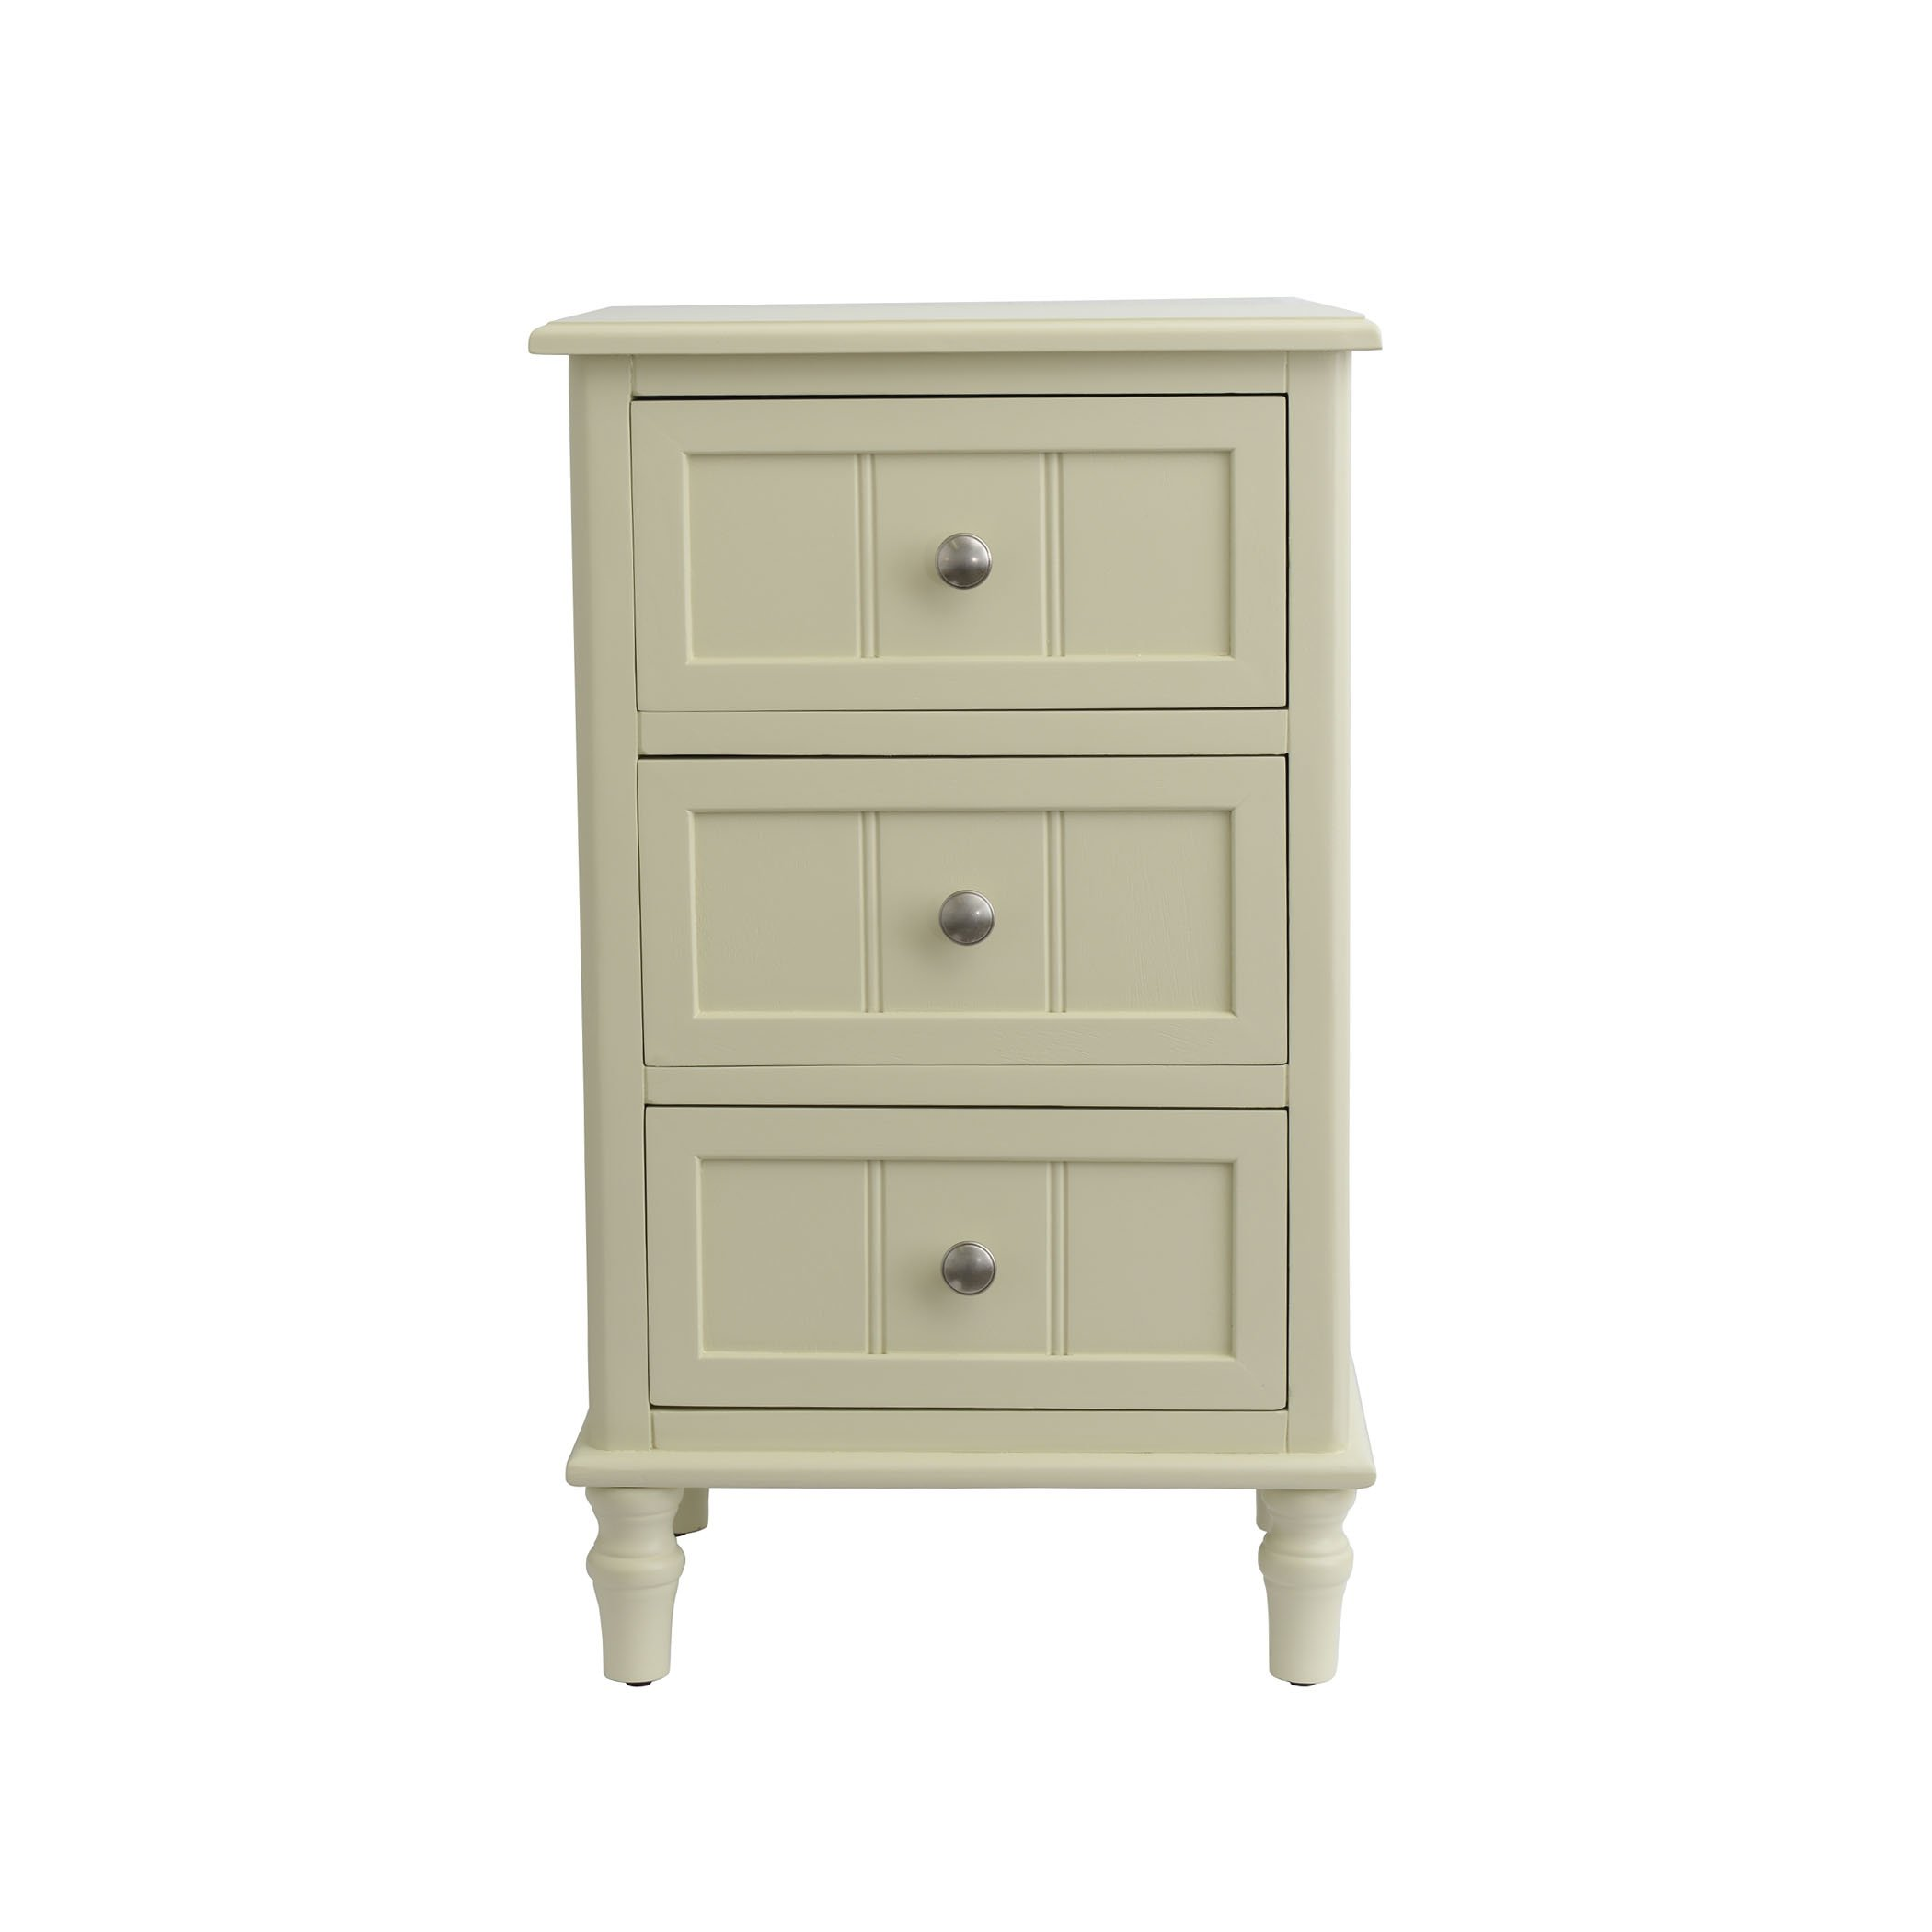 Décor Therapy FR1720 White Finish Three Drawer End Table, Buttermilk by Décor Therapy (Image #1)